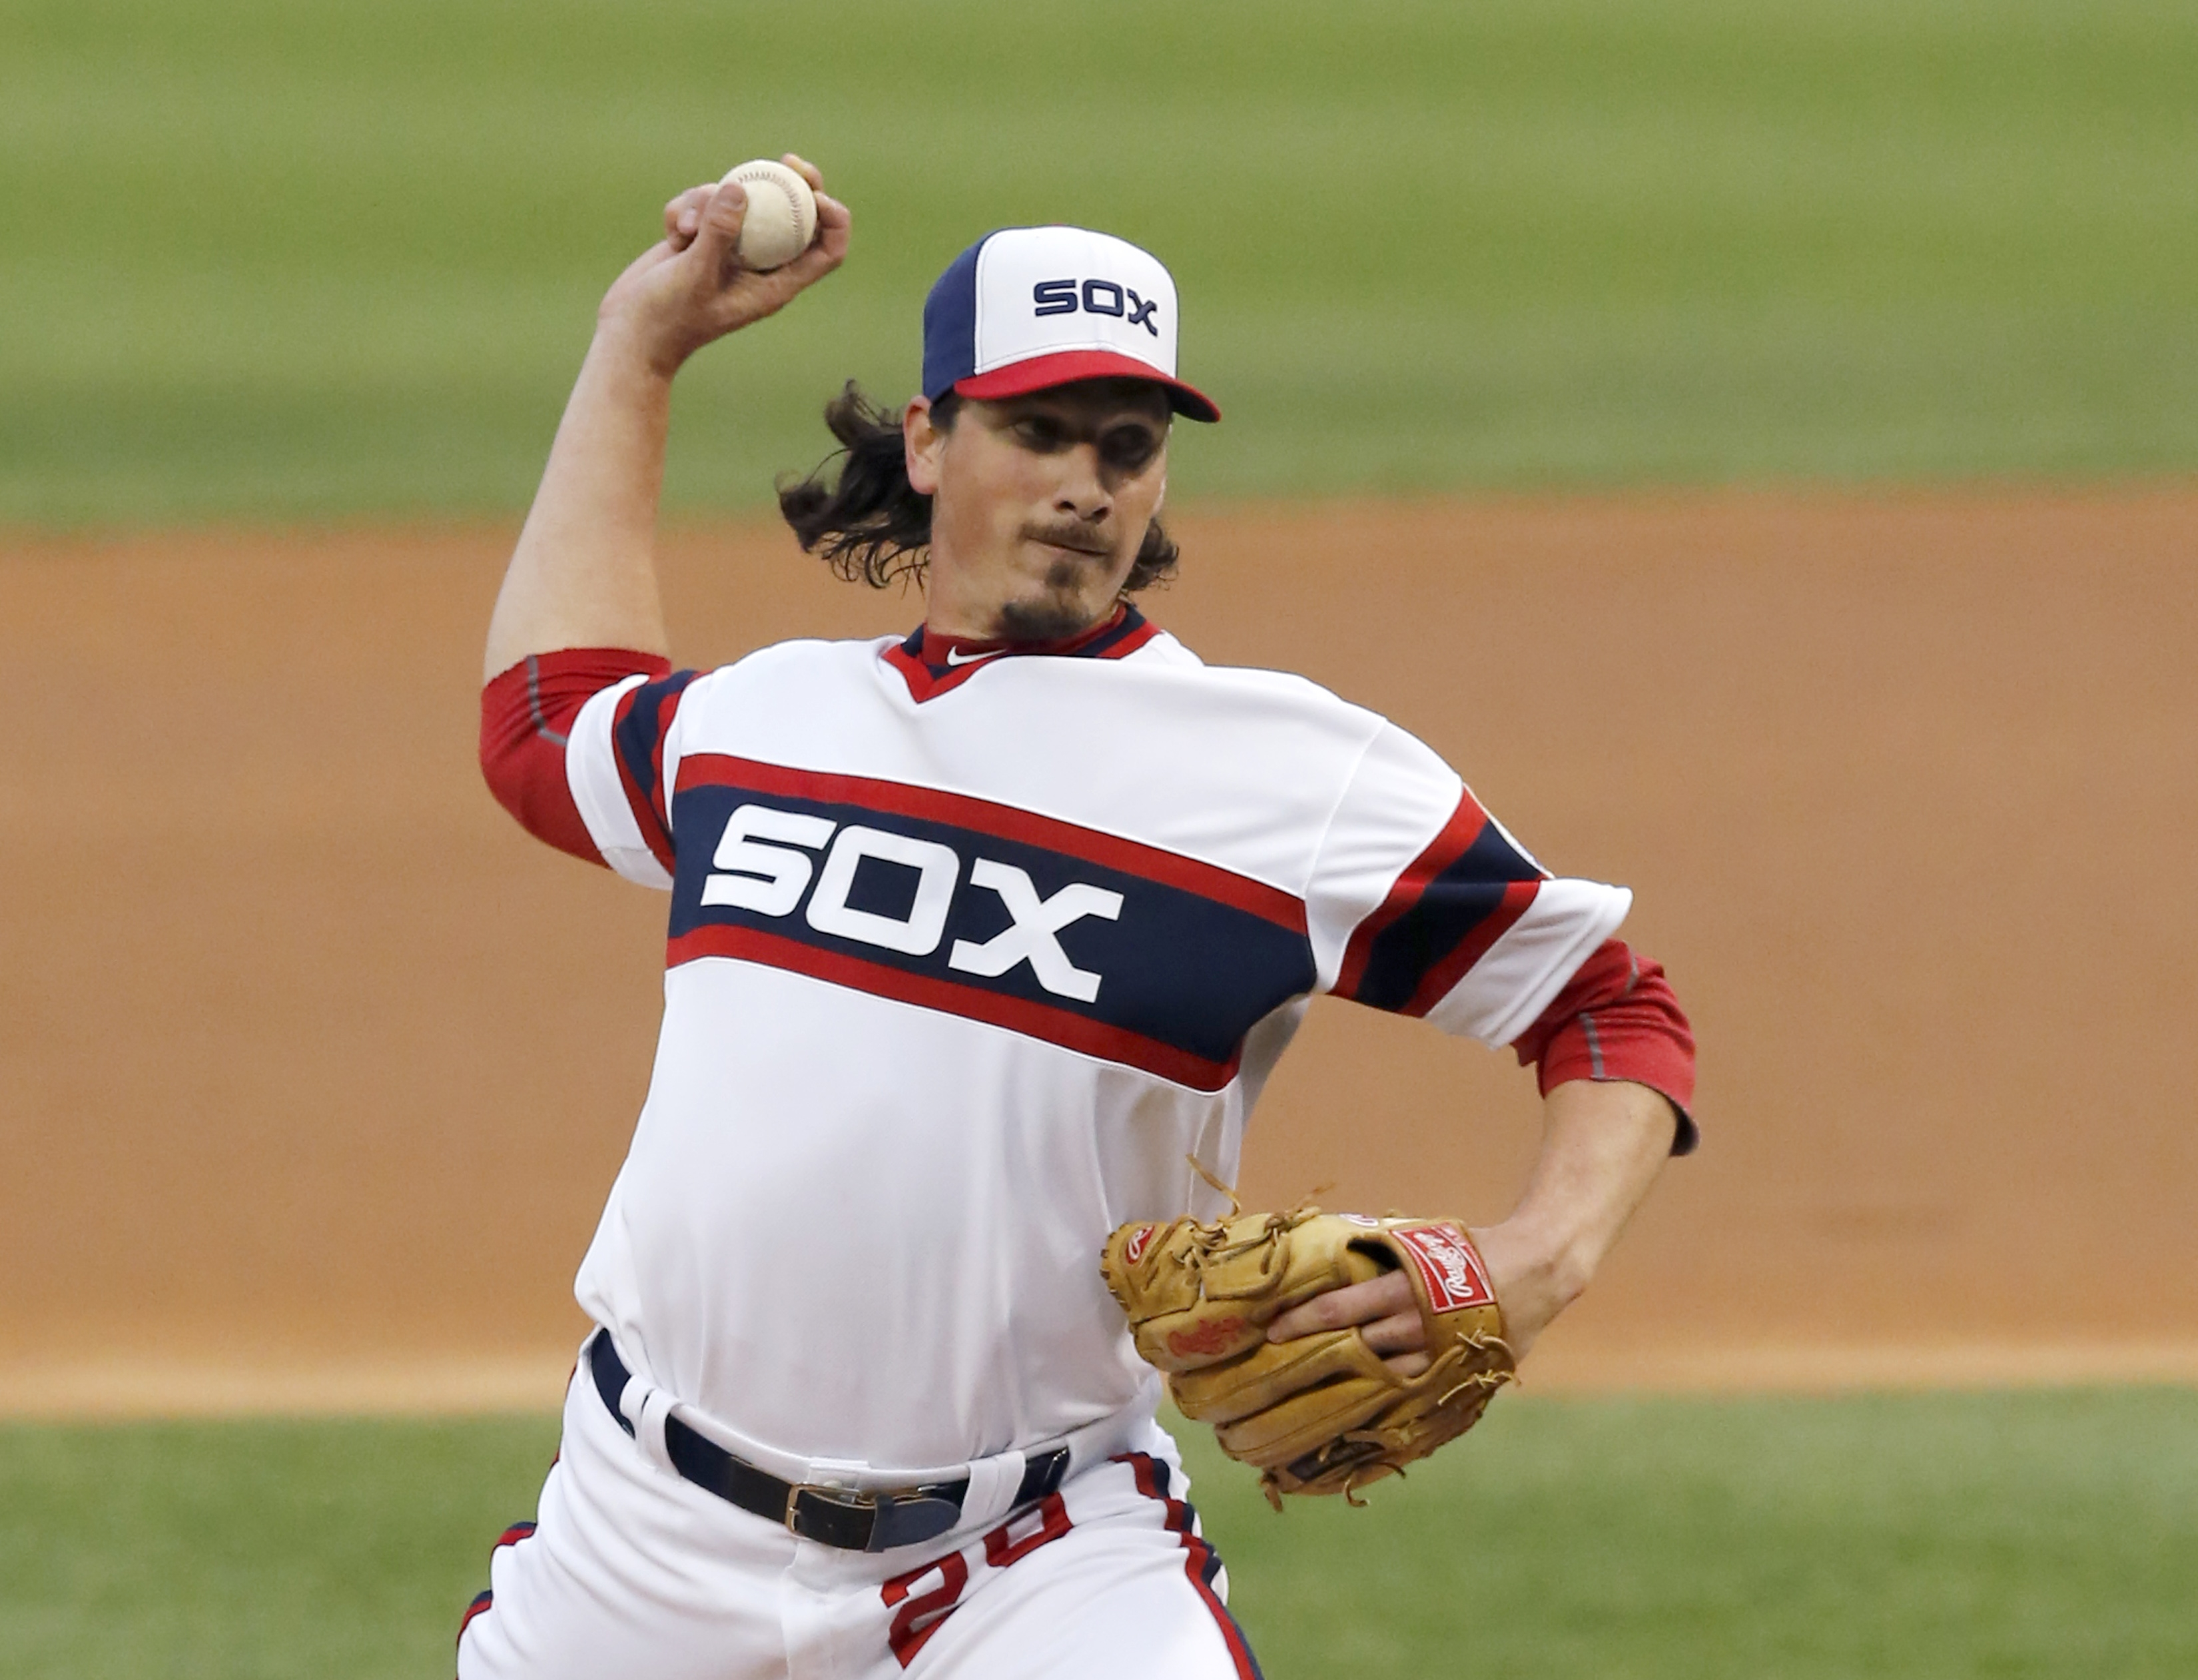 Chicago White Sox starting pitcher Jeff Samardzija delivers during the first inning of a baseball game against the Detroit Tigers Tuesday, May 5, 2015, in Chicago. (AP Photo/Charles Rex Arbogast)